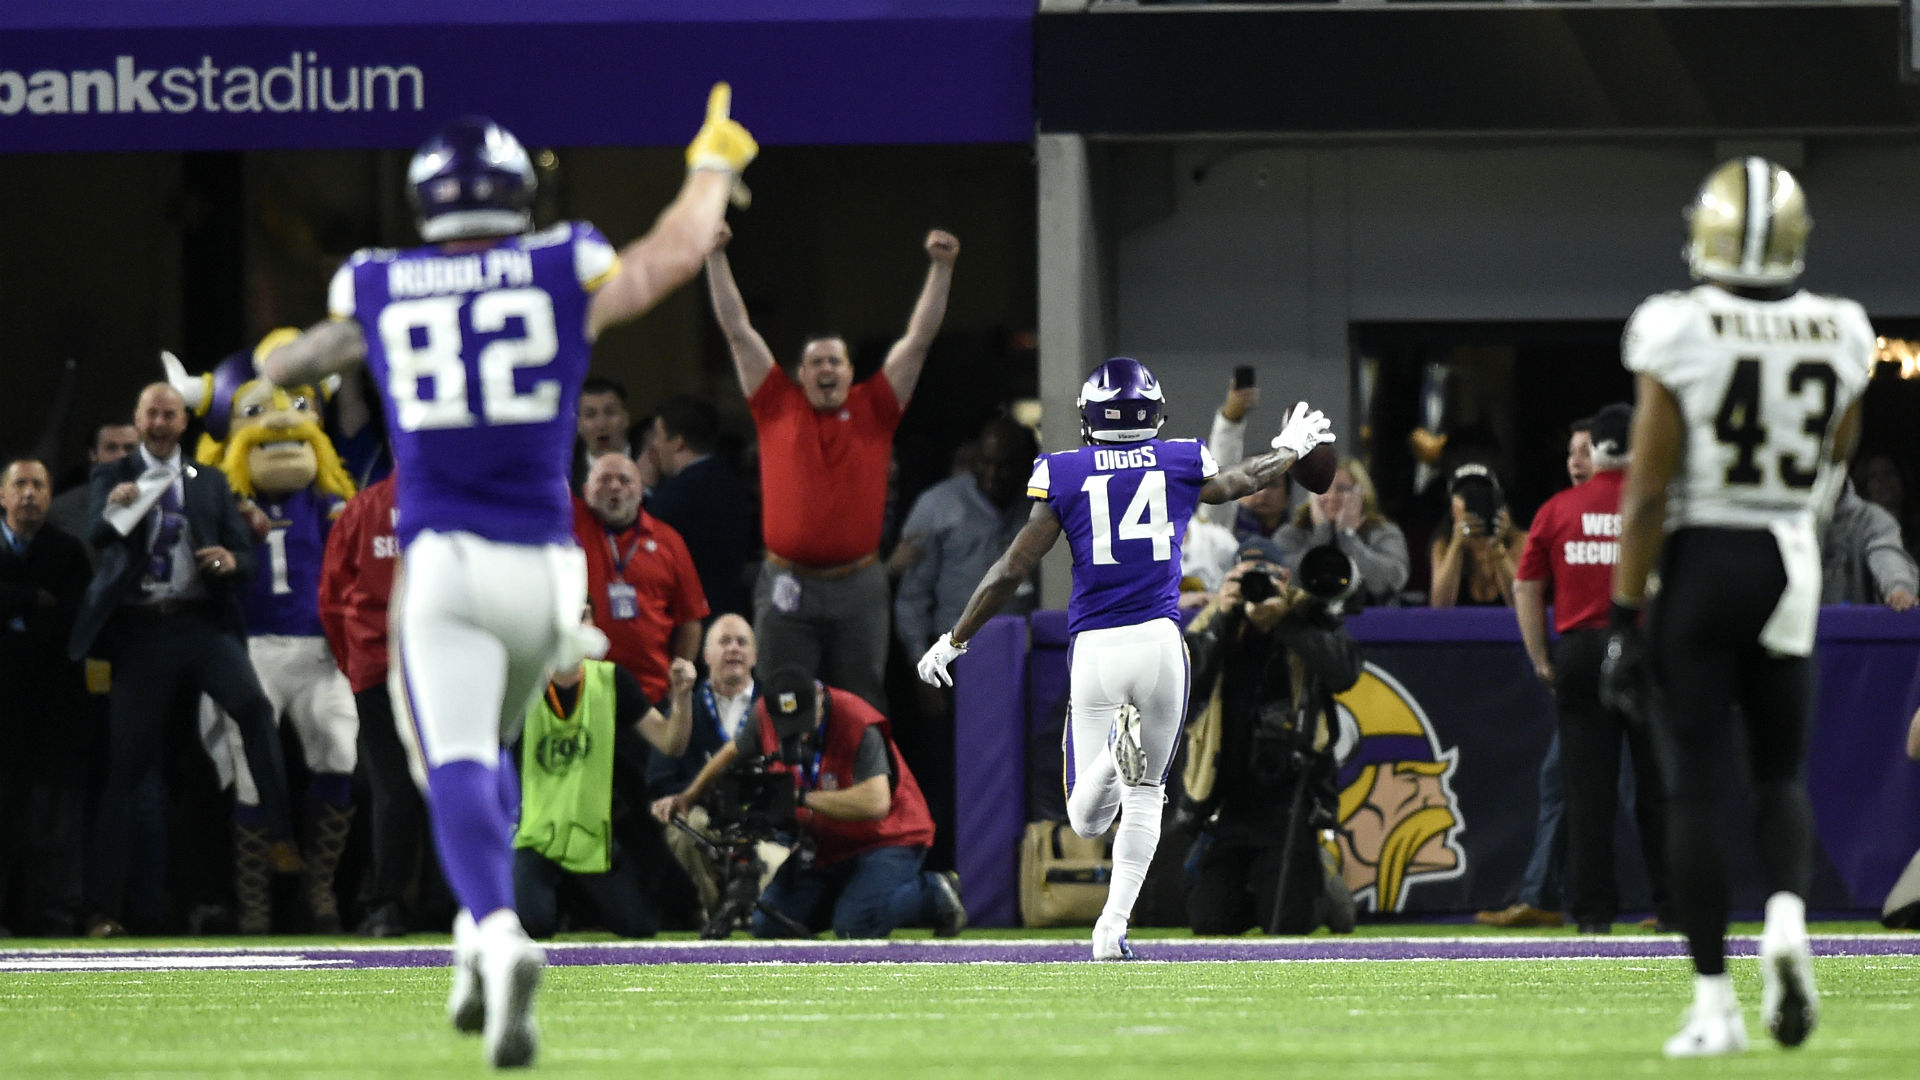 Minneapolis-miracle-011718-getty-ftrjpg_z8112bb0ep0z1xwbl0i0r8jtn